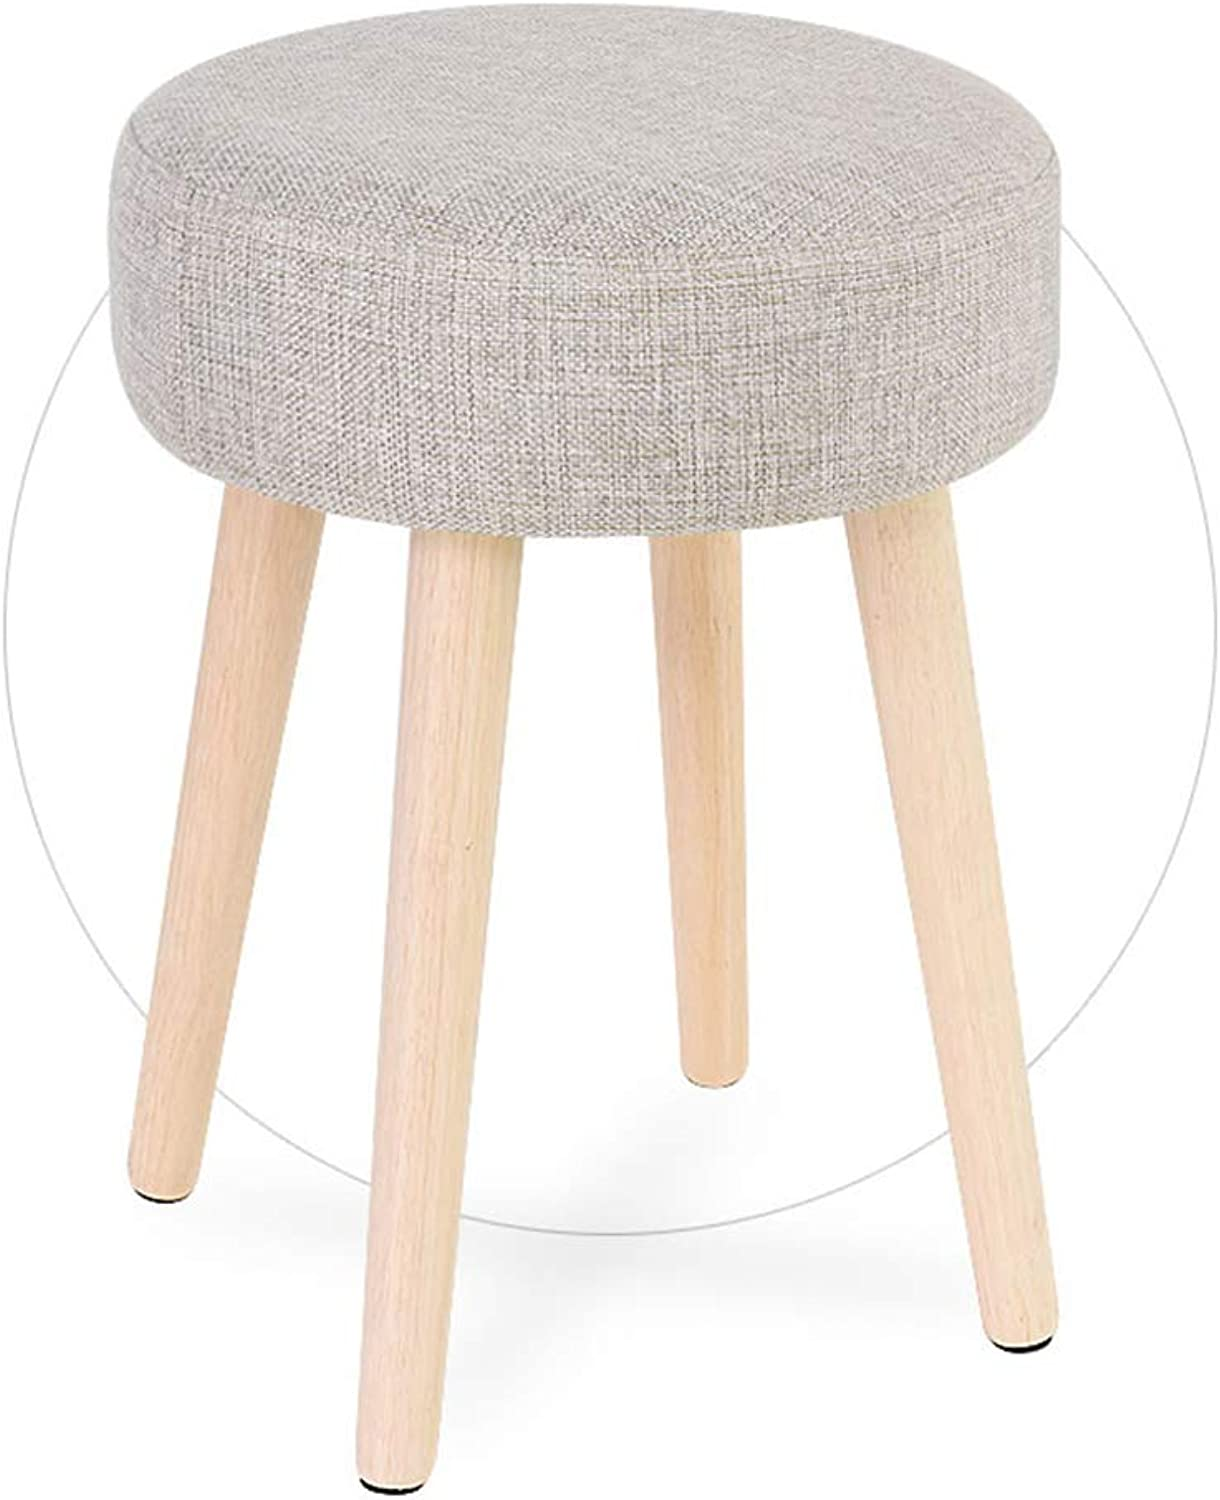 Stool Wood,Bar Bistro Kitchen Dining Chairs Round Wood Seat Breakfast Chairs Ergonomic Modern Comfortable Solid Wood Legs Wooden Legs Simple and Casual Executive Office Task Stool